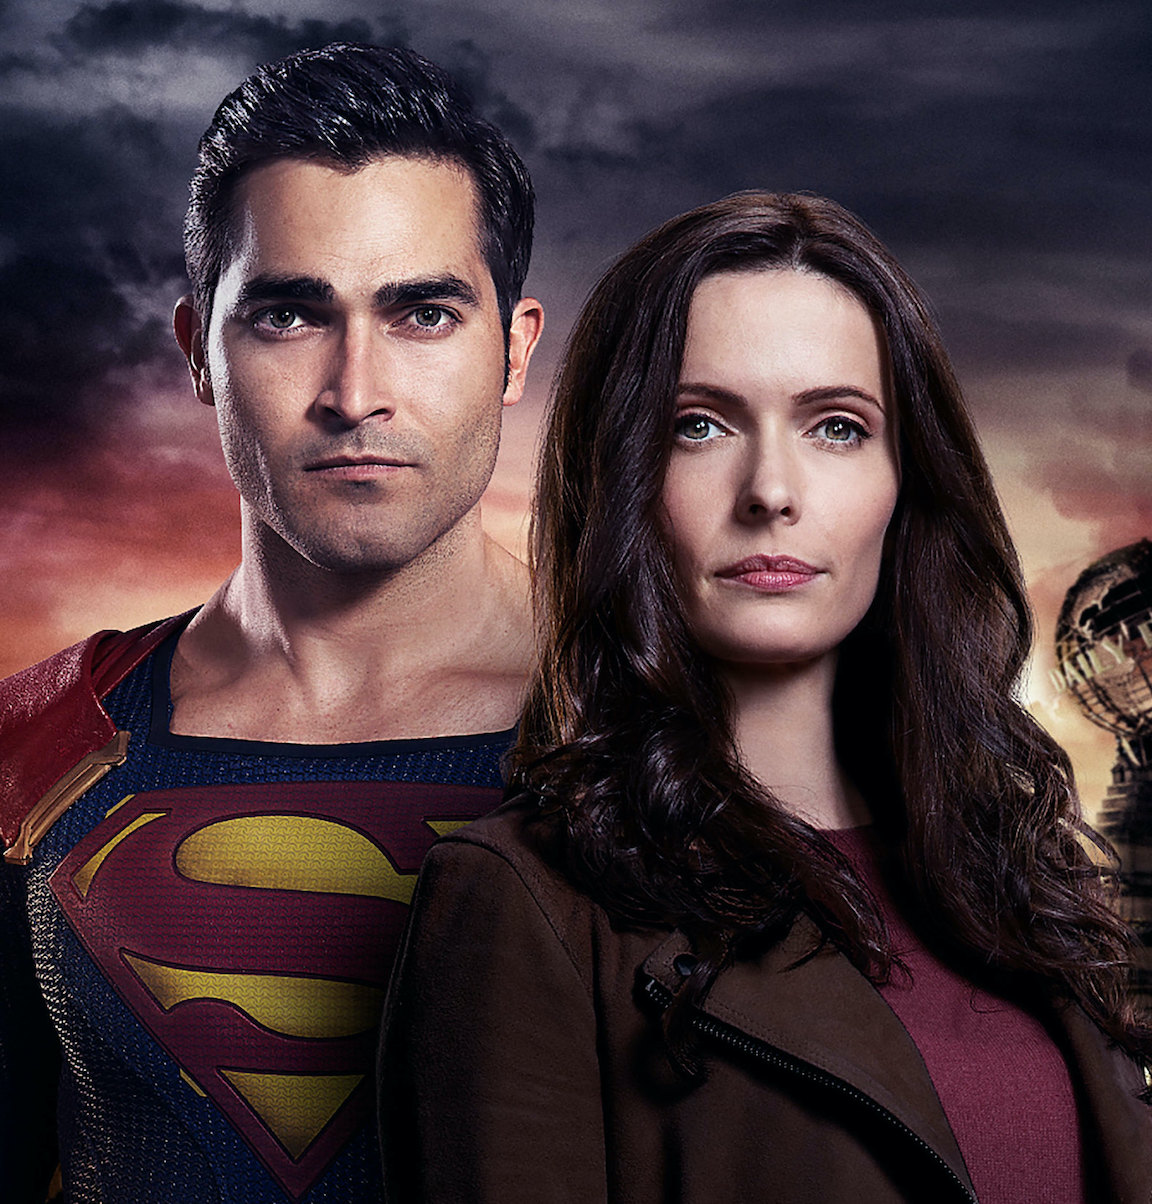 `Superman & Lois`: From left, Tyler Hoechlin as Superman and Elizabeth Tulloch as Lois Lane. (Photo by The CW/©2020 The CW Network LLC/all rights reserved)